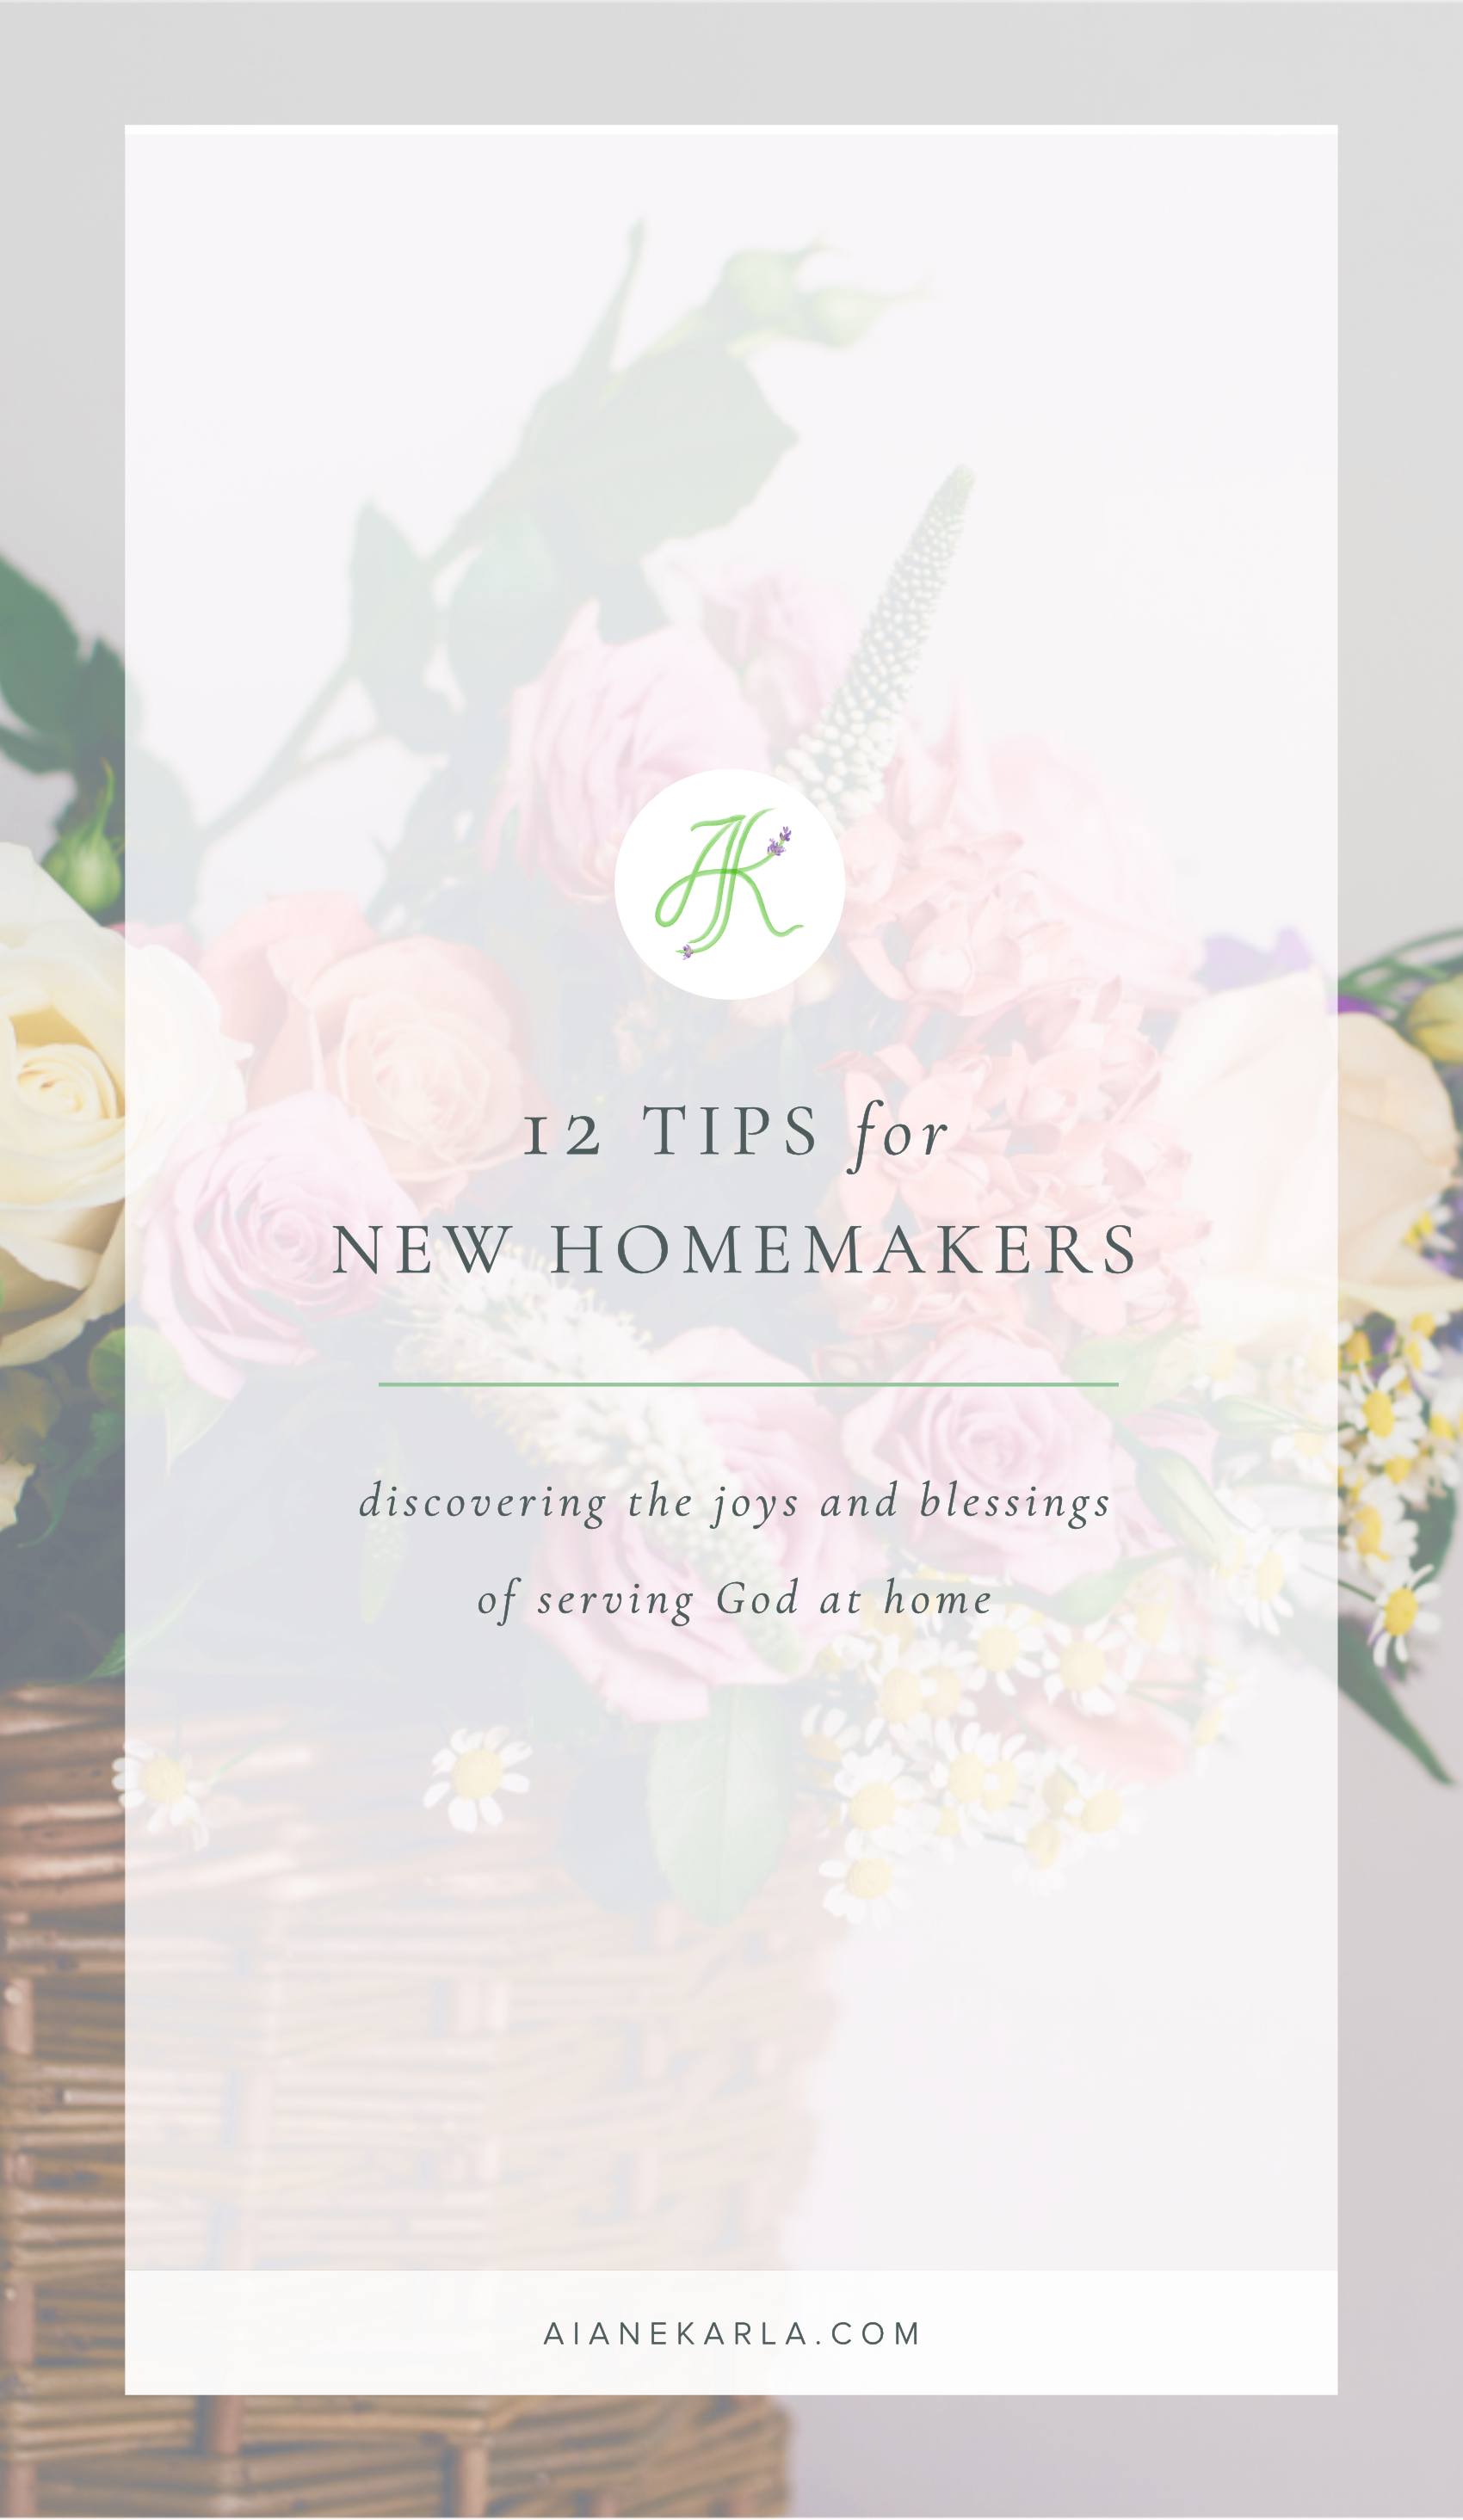 12 Tips for New Homemakers | Aiane Karla | www.aianekarla.com